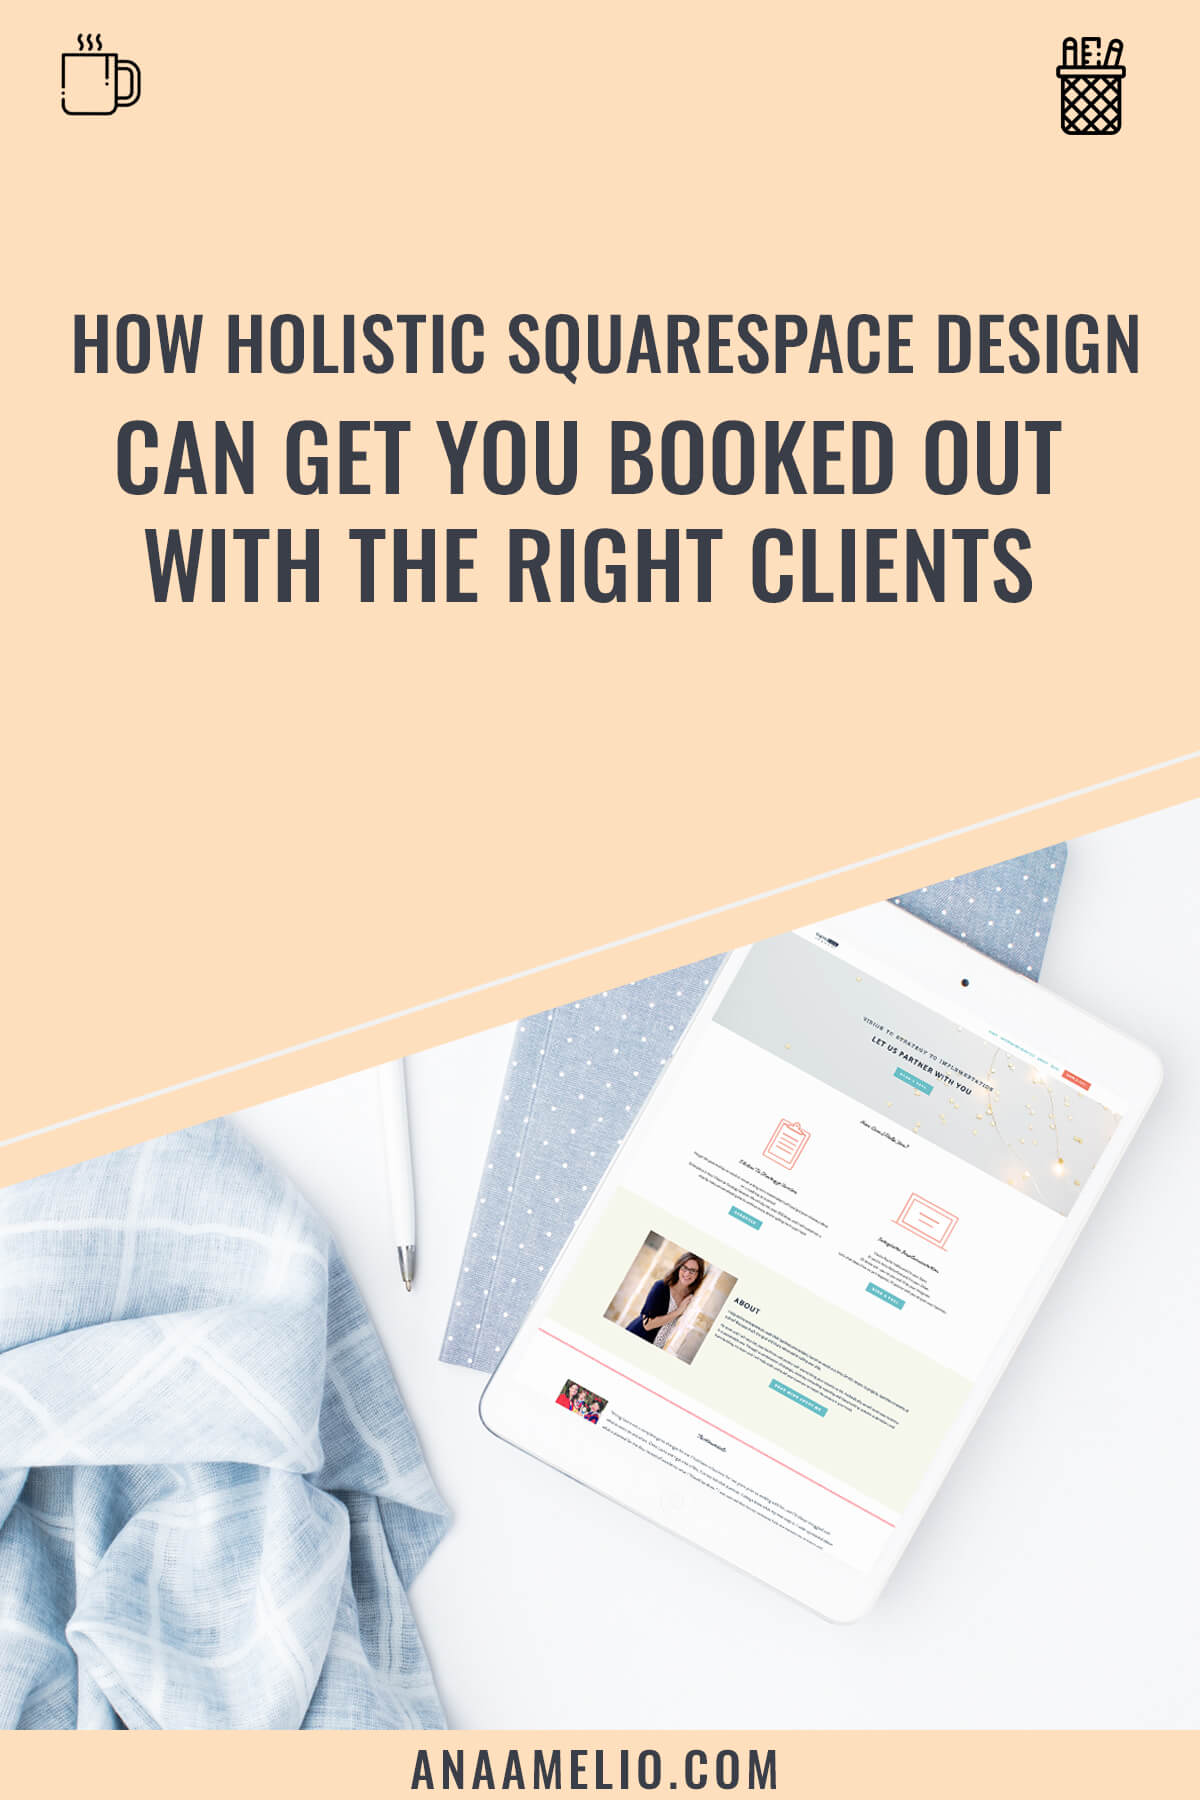 Getting your website online is just the beginning of a wonderful adventure. When you create a website with strategy behind it, you can get booked out with the right clients without constantly hustling on social media. Learn how in this post. #anaameliodesign #squarespacedesign